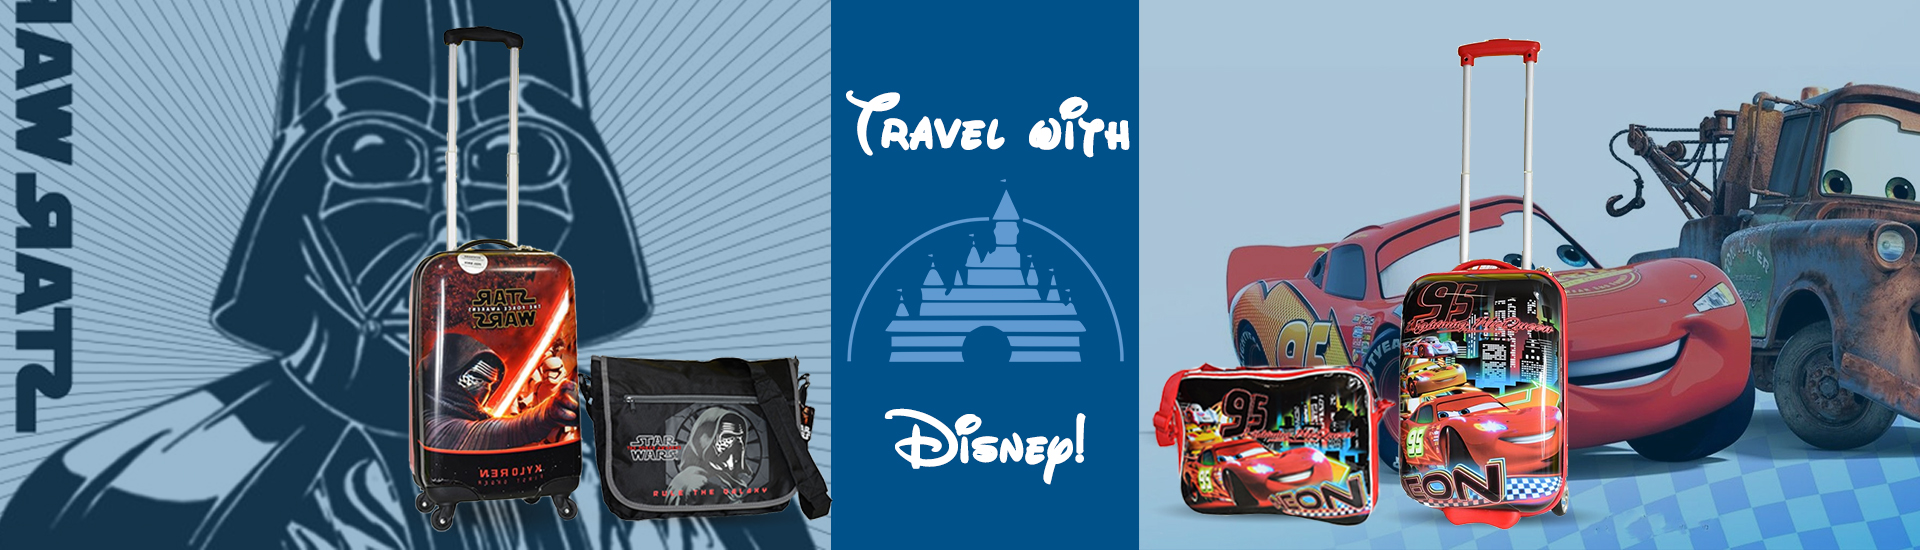 Travel with disney